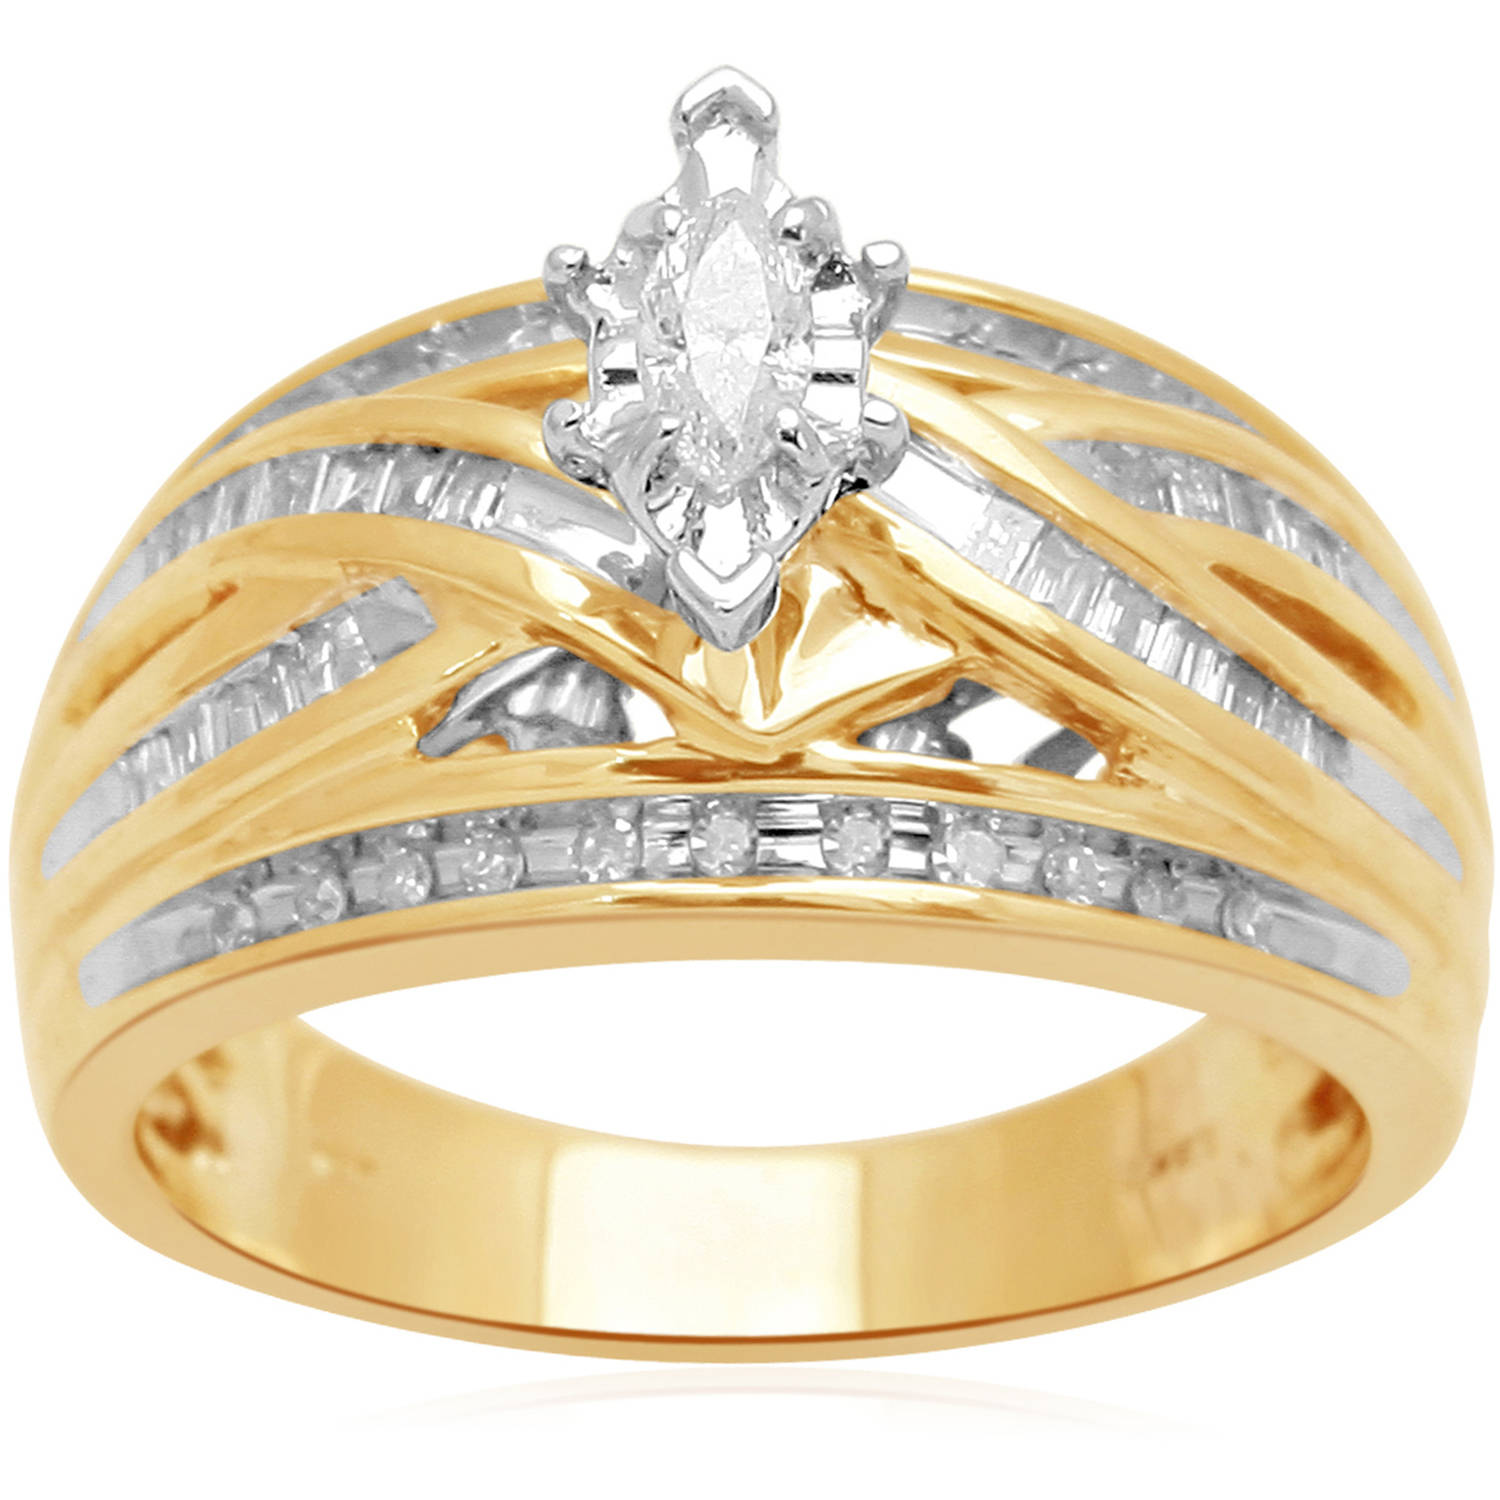 1 2 Carat T.W. Diamond 14kt Yellow Gold Bridal Ring by Generic